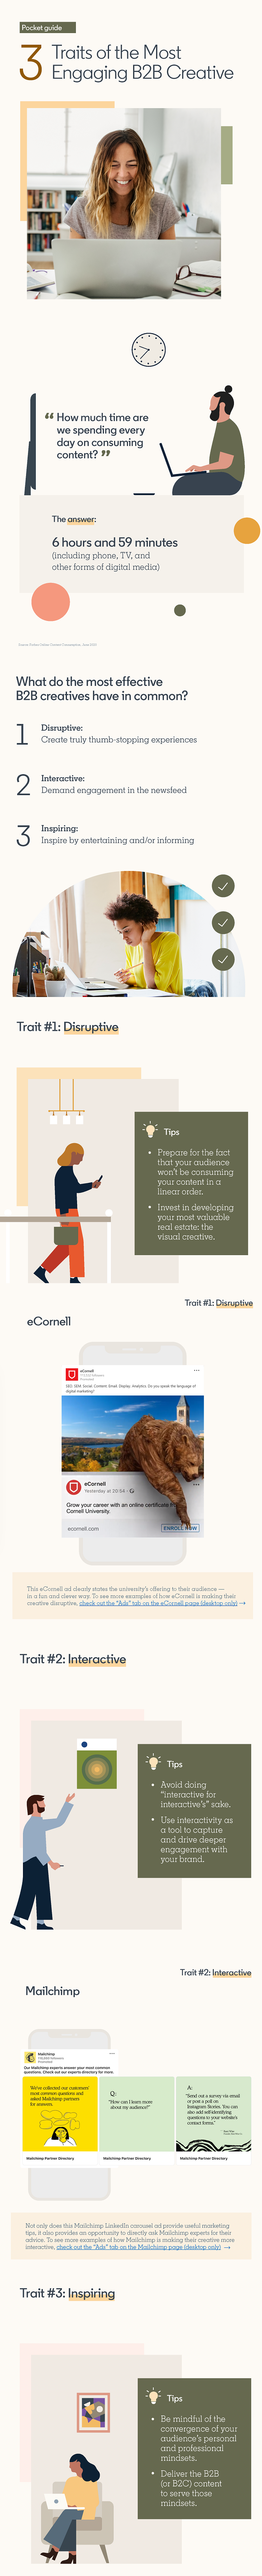 Infographic with traits of the most engaging B2B content according to LinkedIn.